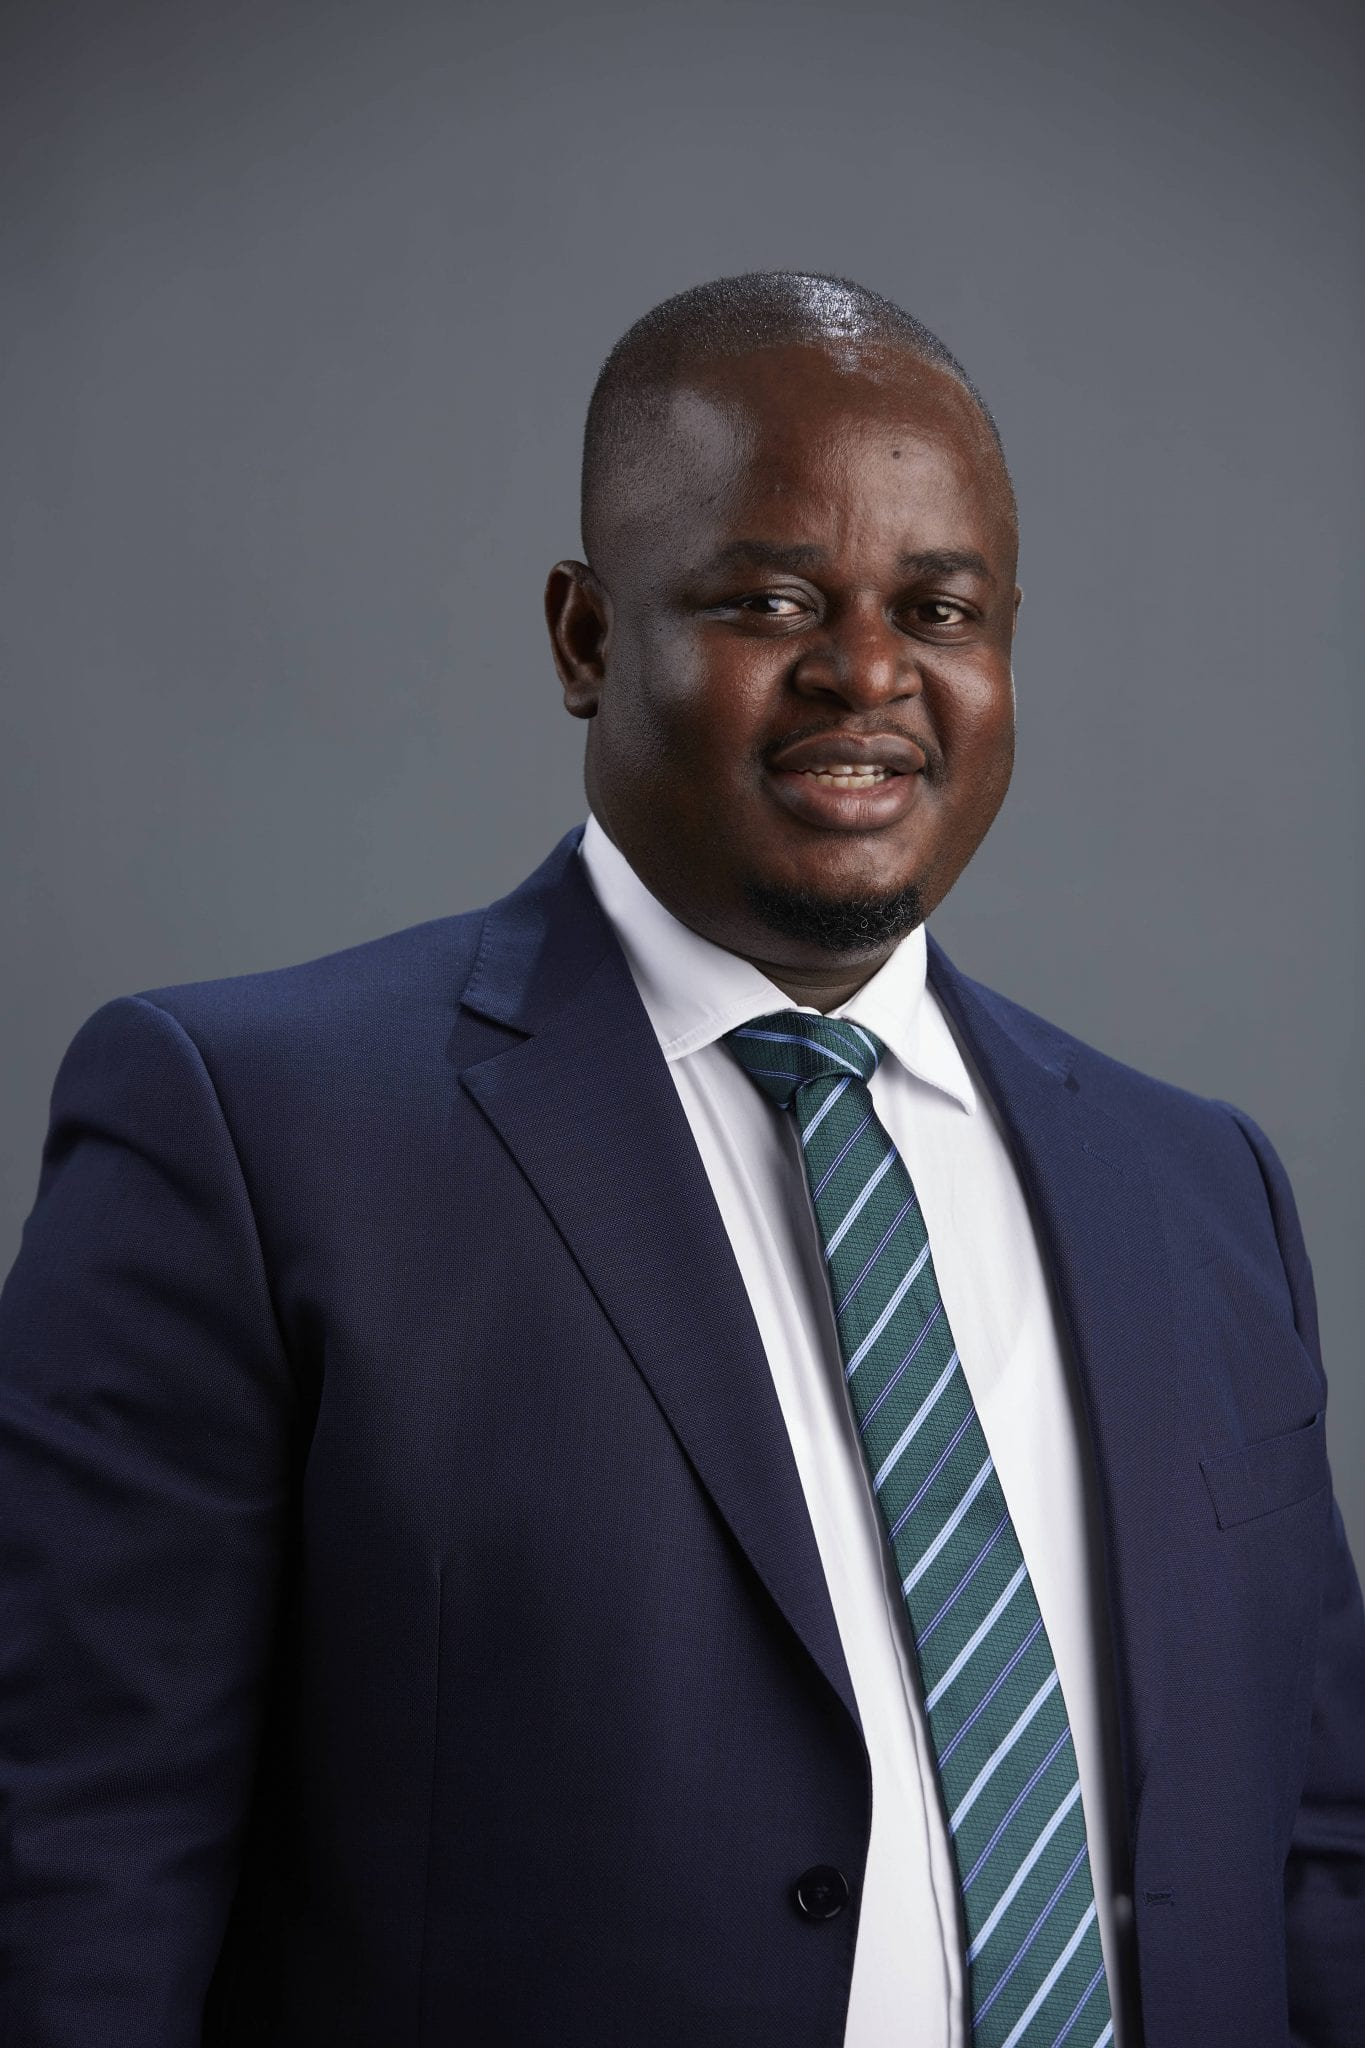 MultiChoice Africa appoints new Managing Director for Ghana operations